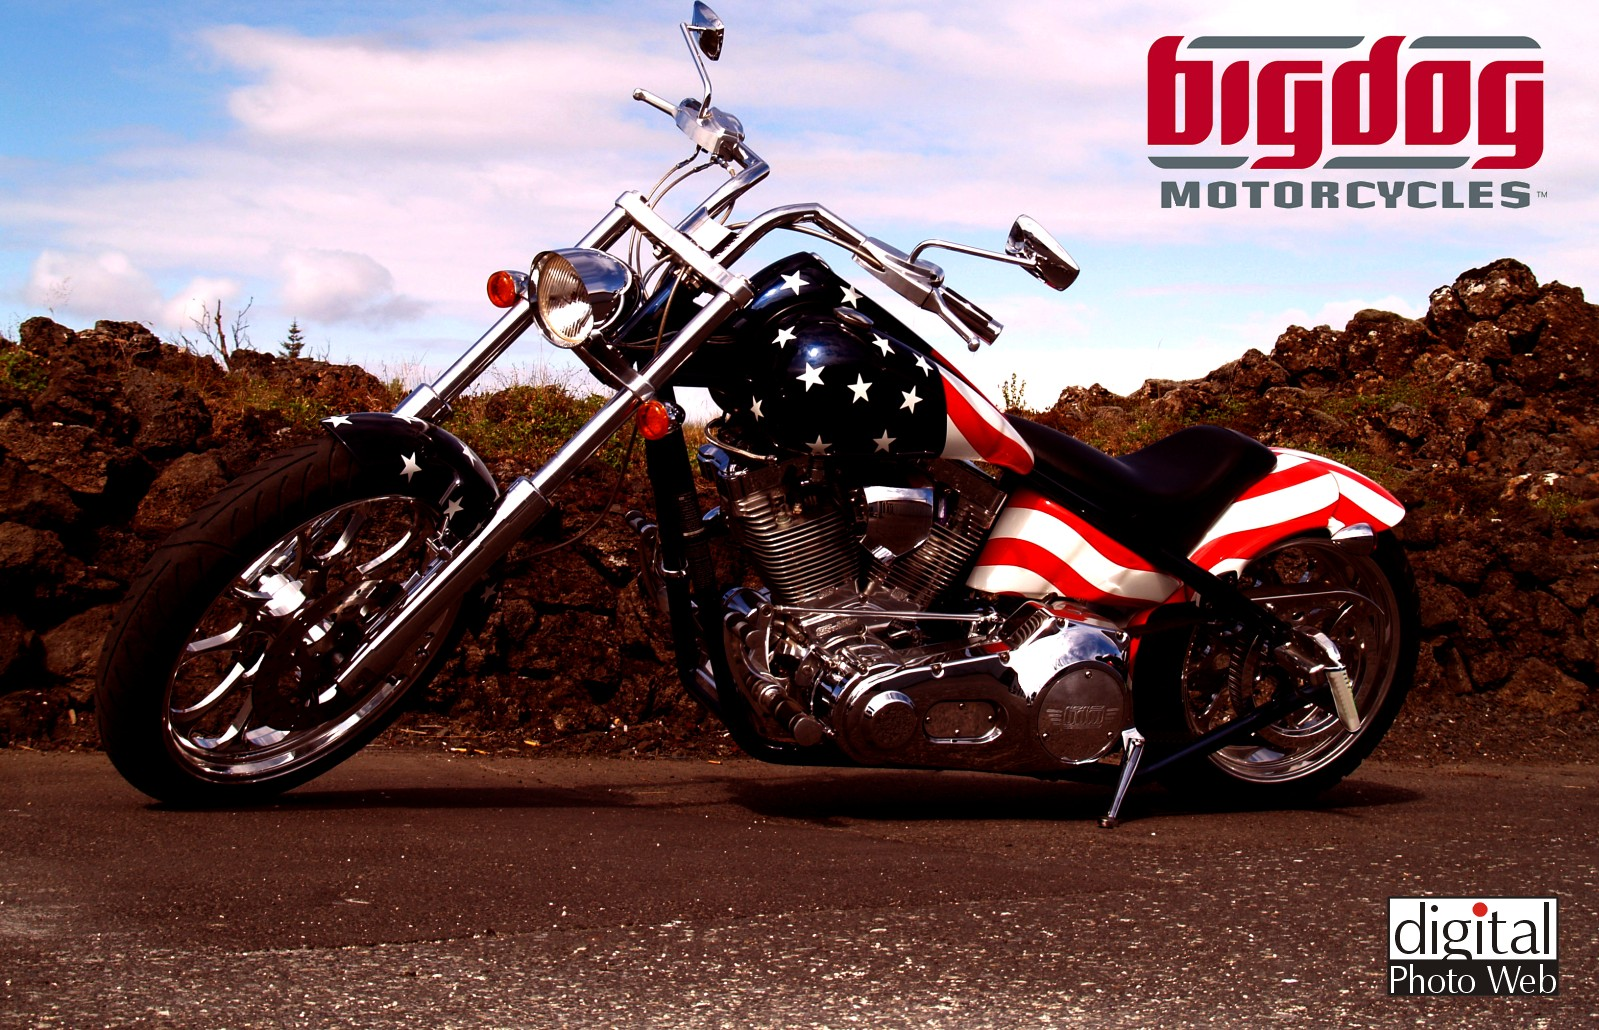 big dog motorcycles wallpaper